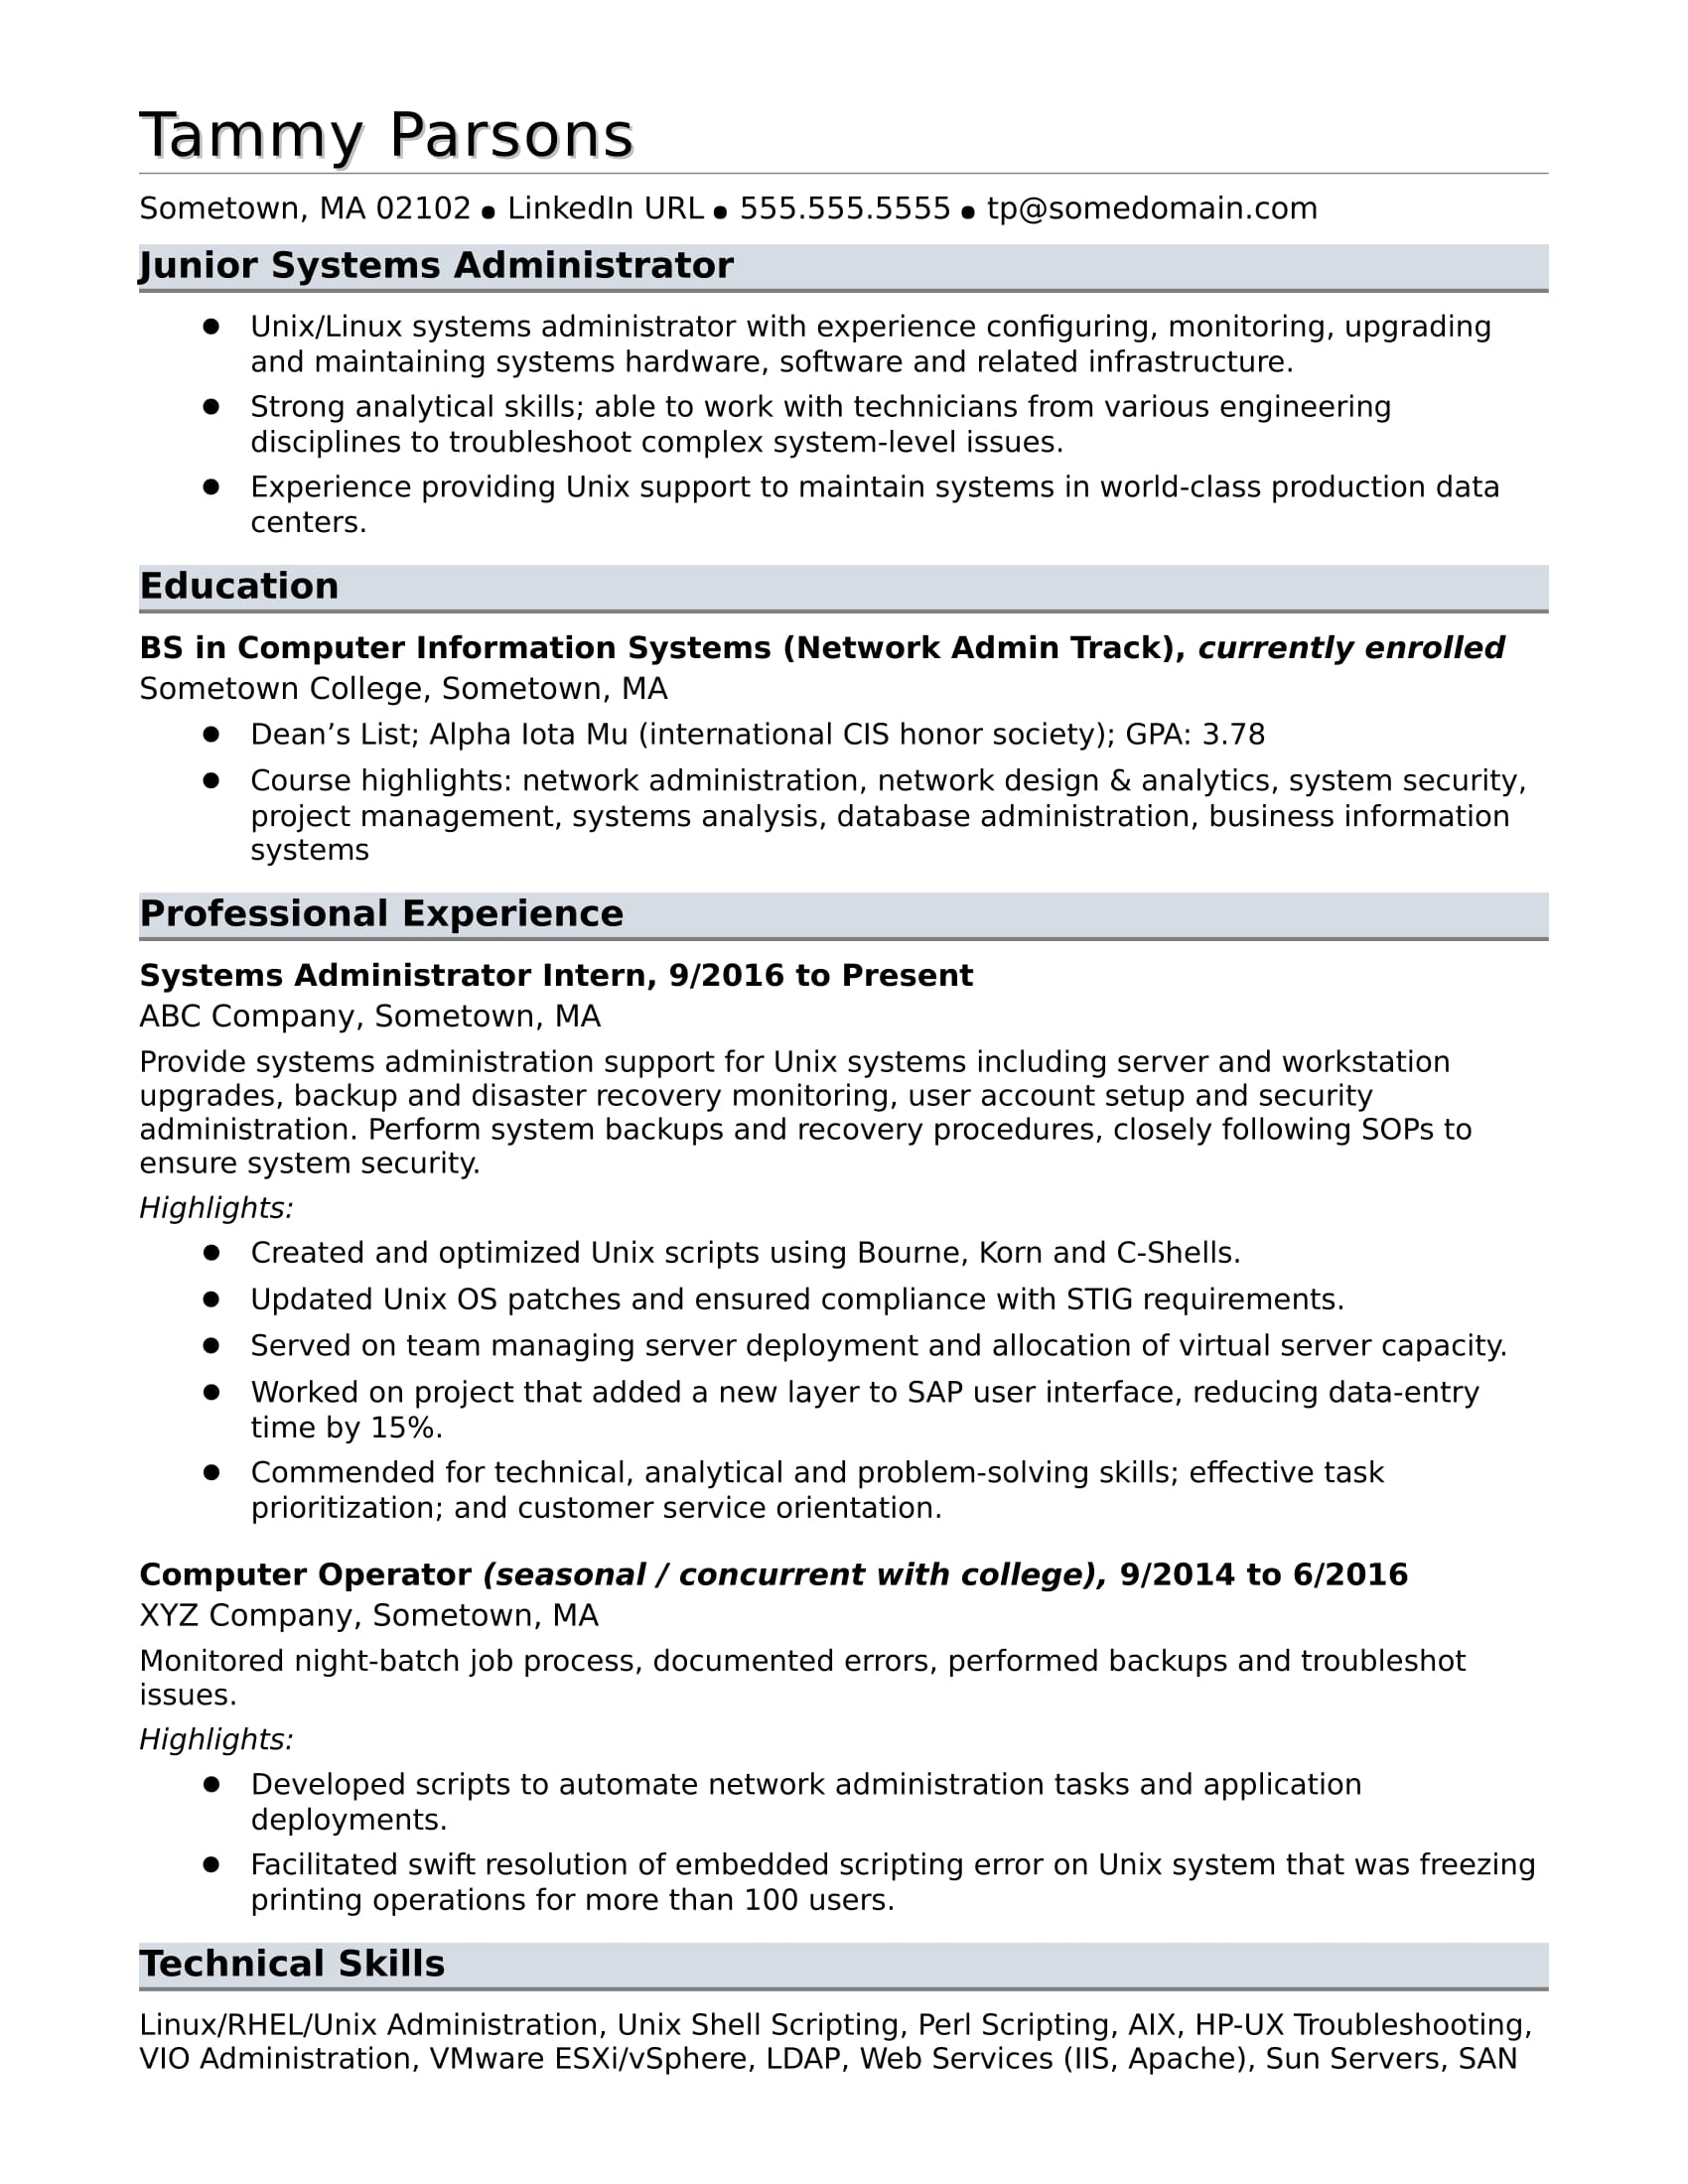 Marvelous Sample Resume For An Entry Level Systems Administrator On Systems Administrator Resume